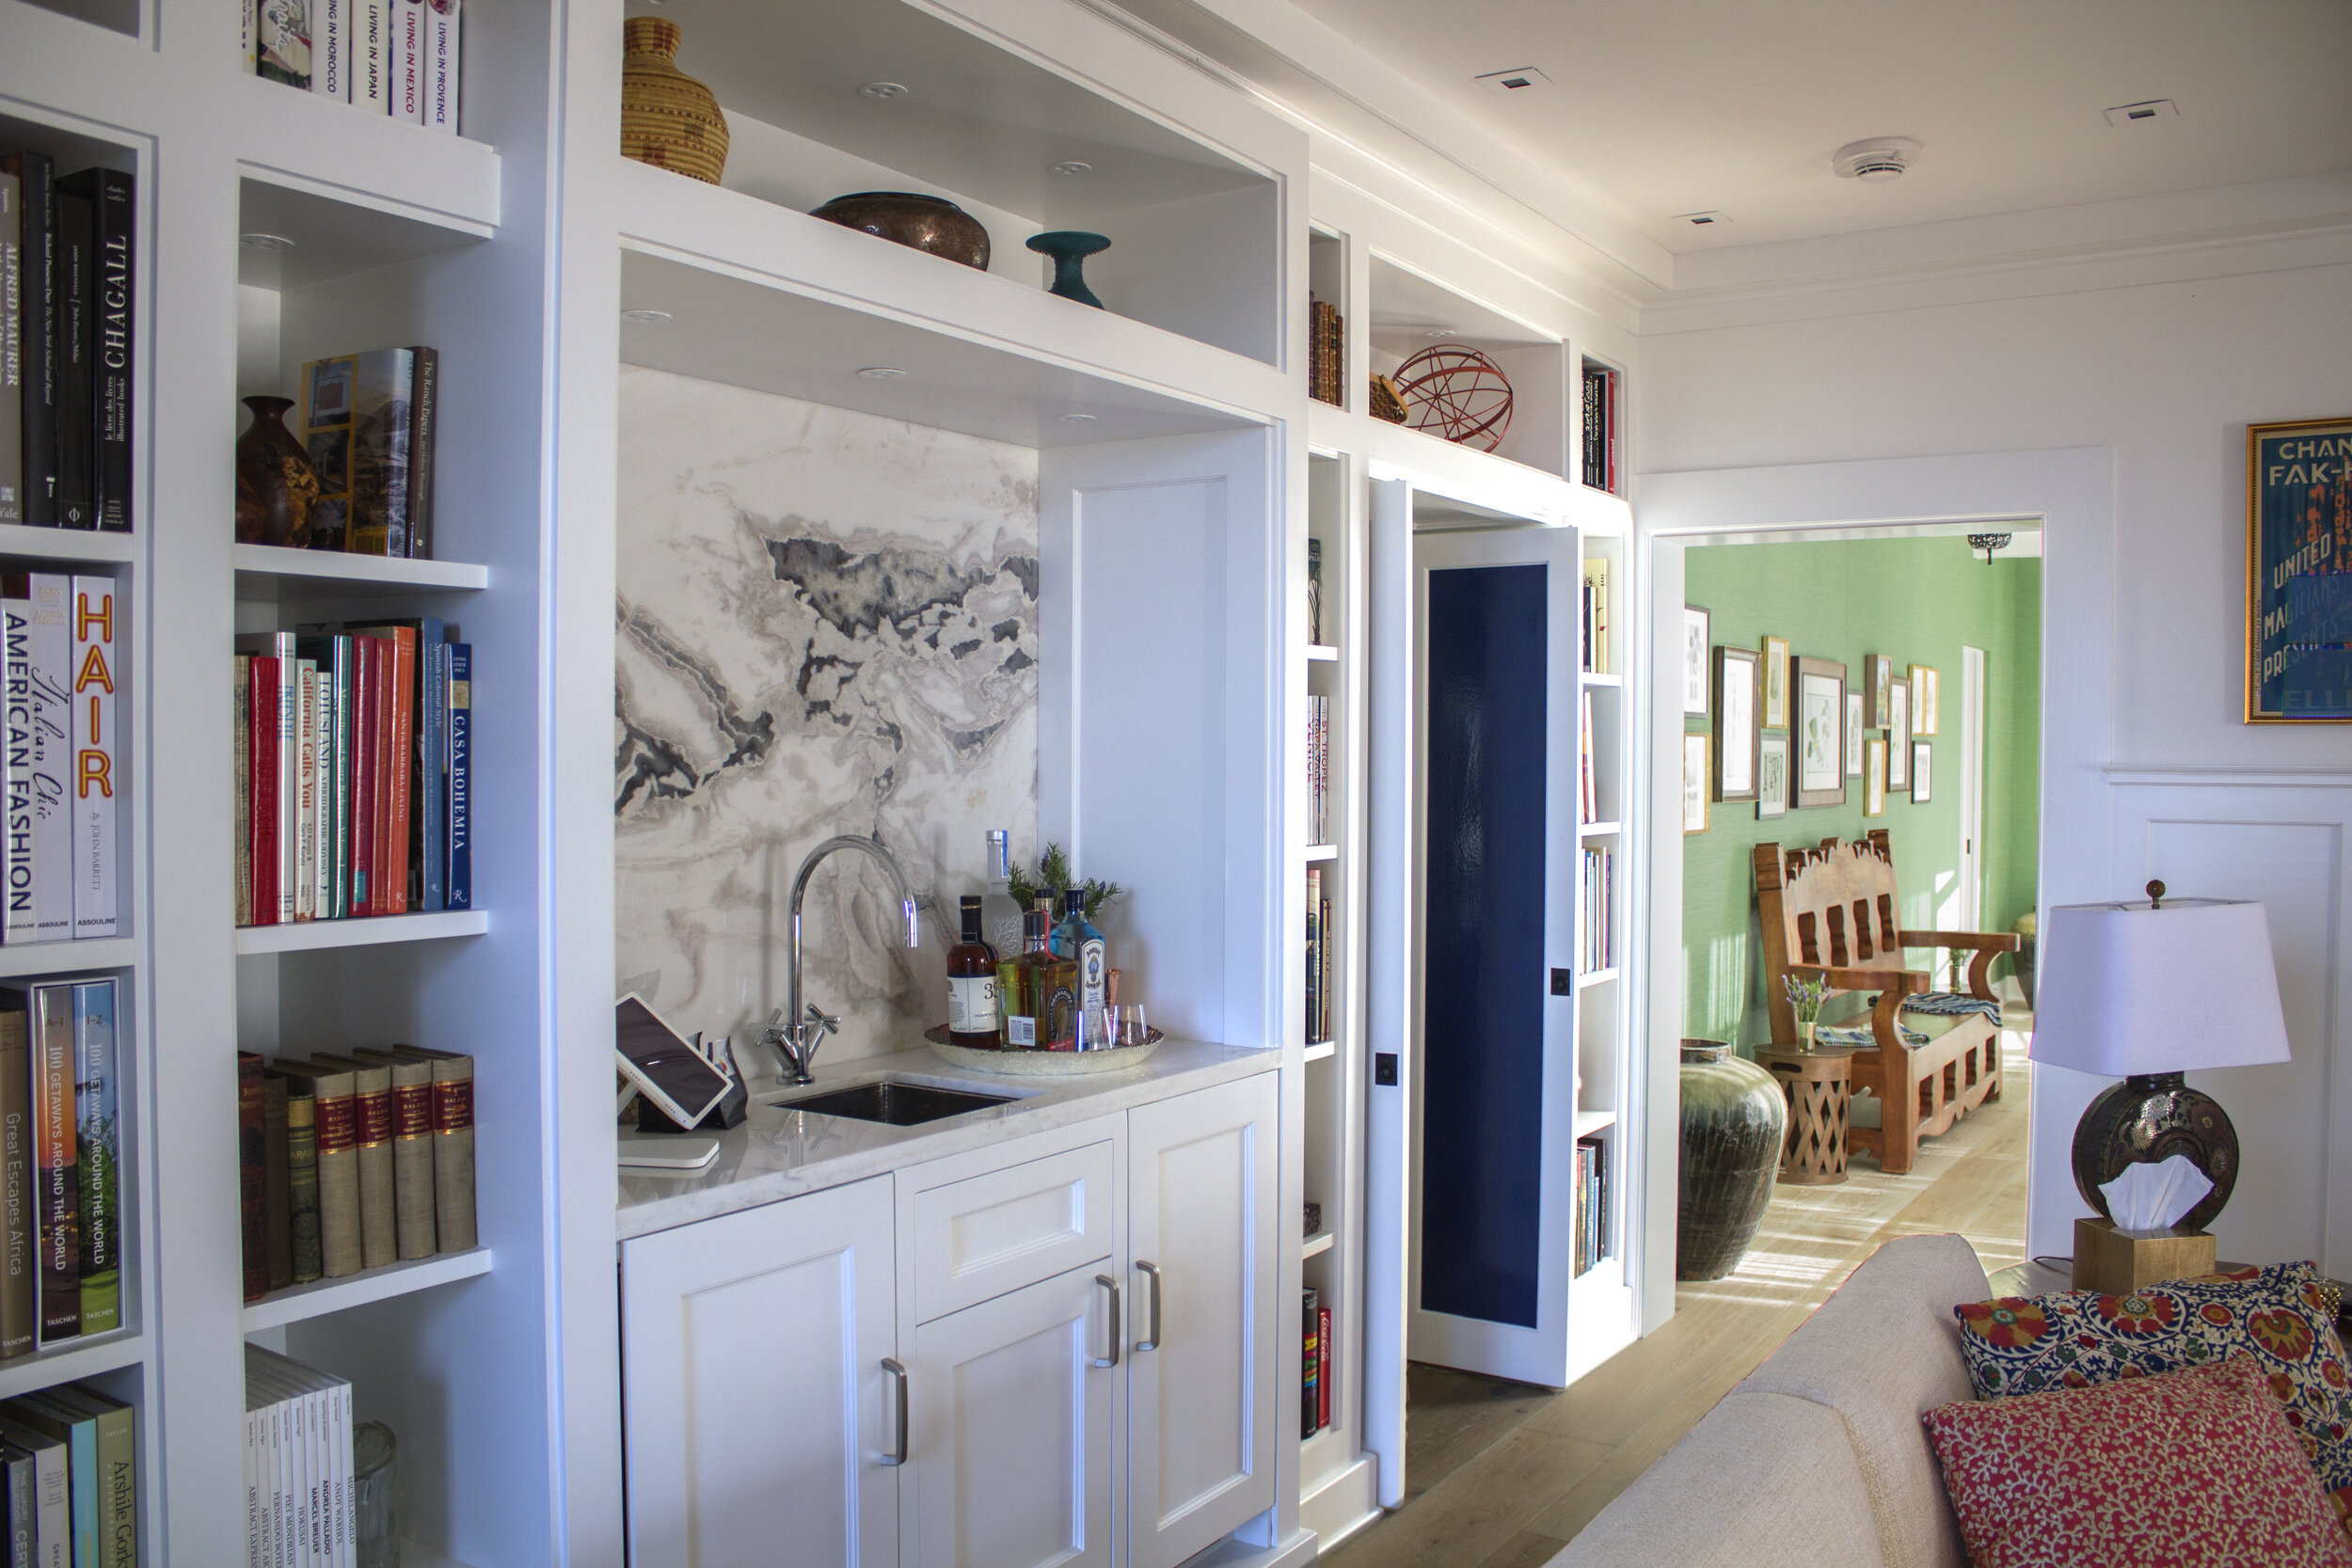 A simple yet refined wet-bar with refrigerator and wine cooler hidden away by wood paneling. Custom built-in shelving with top shelf lighting